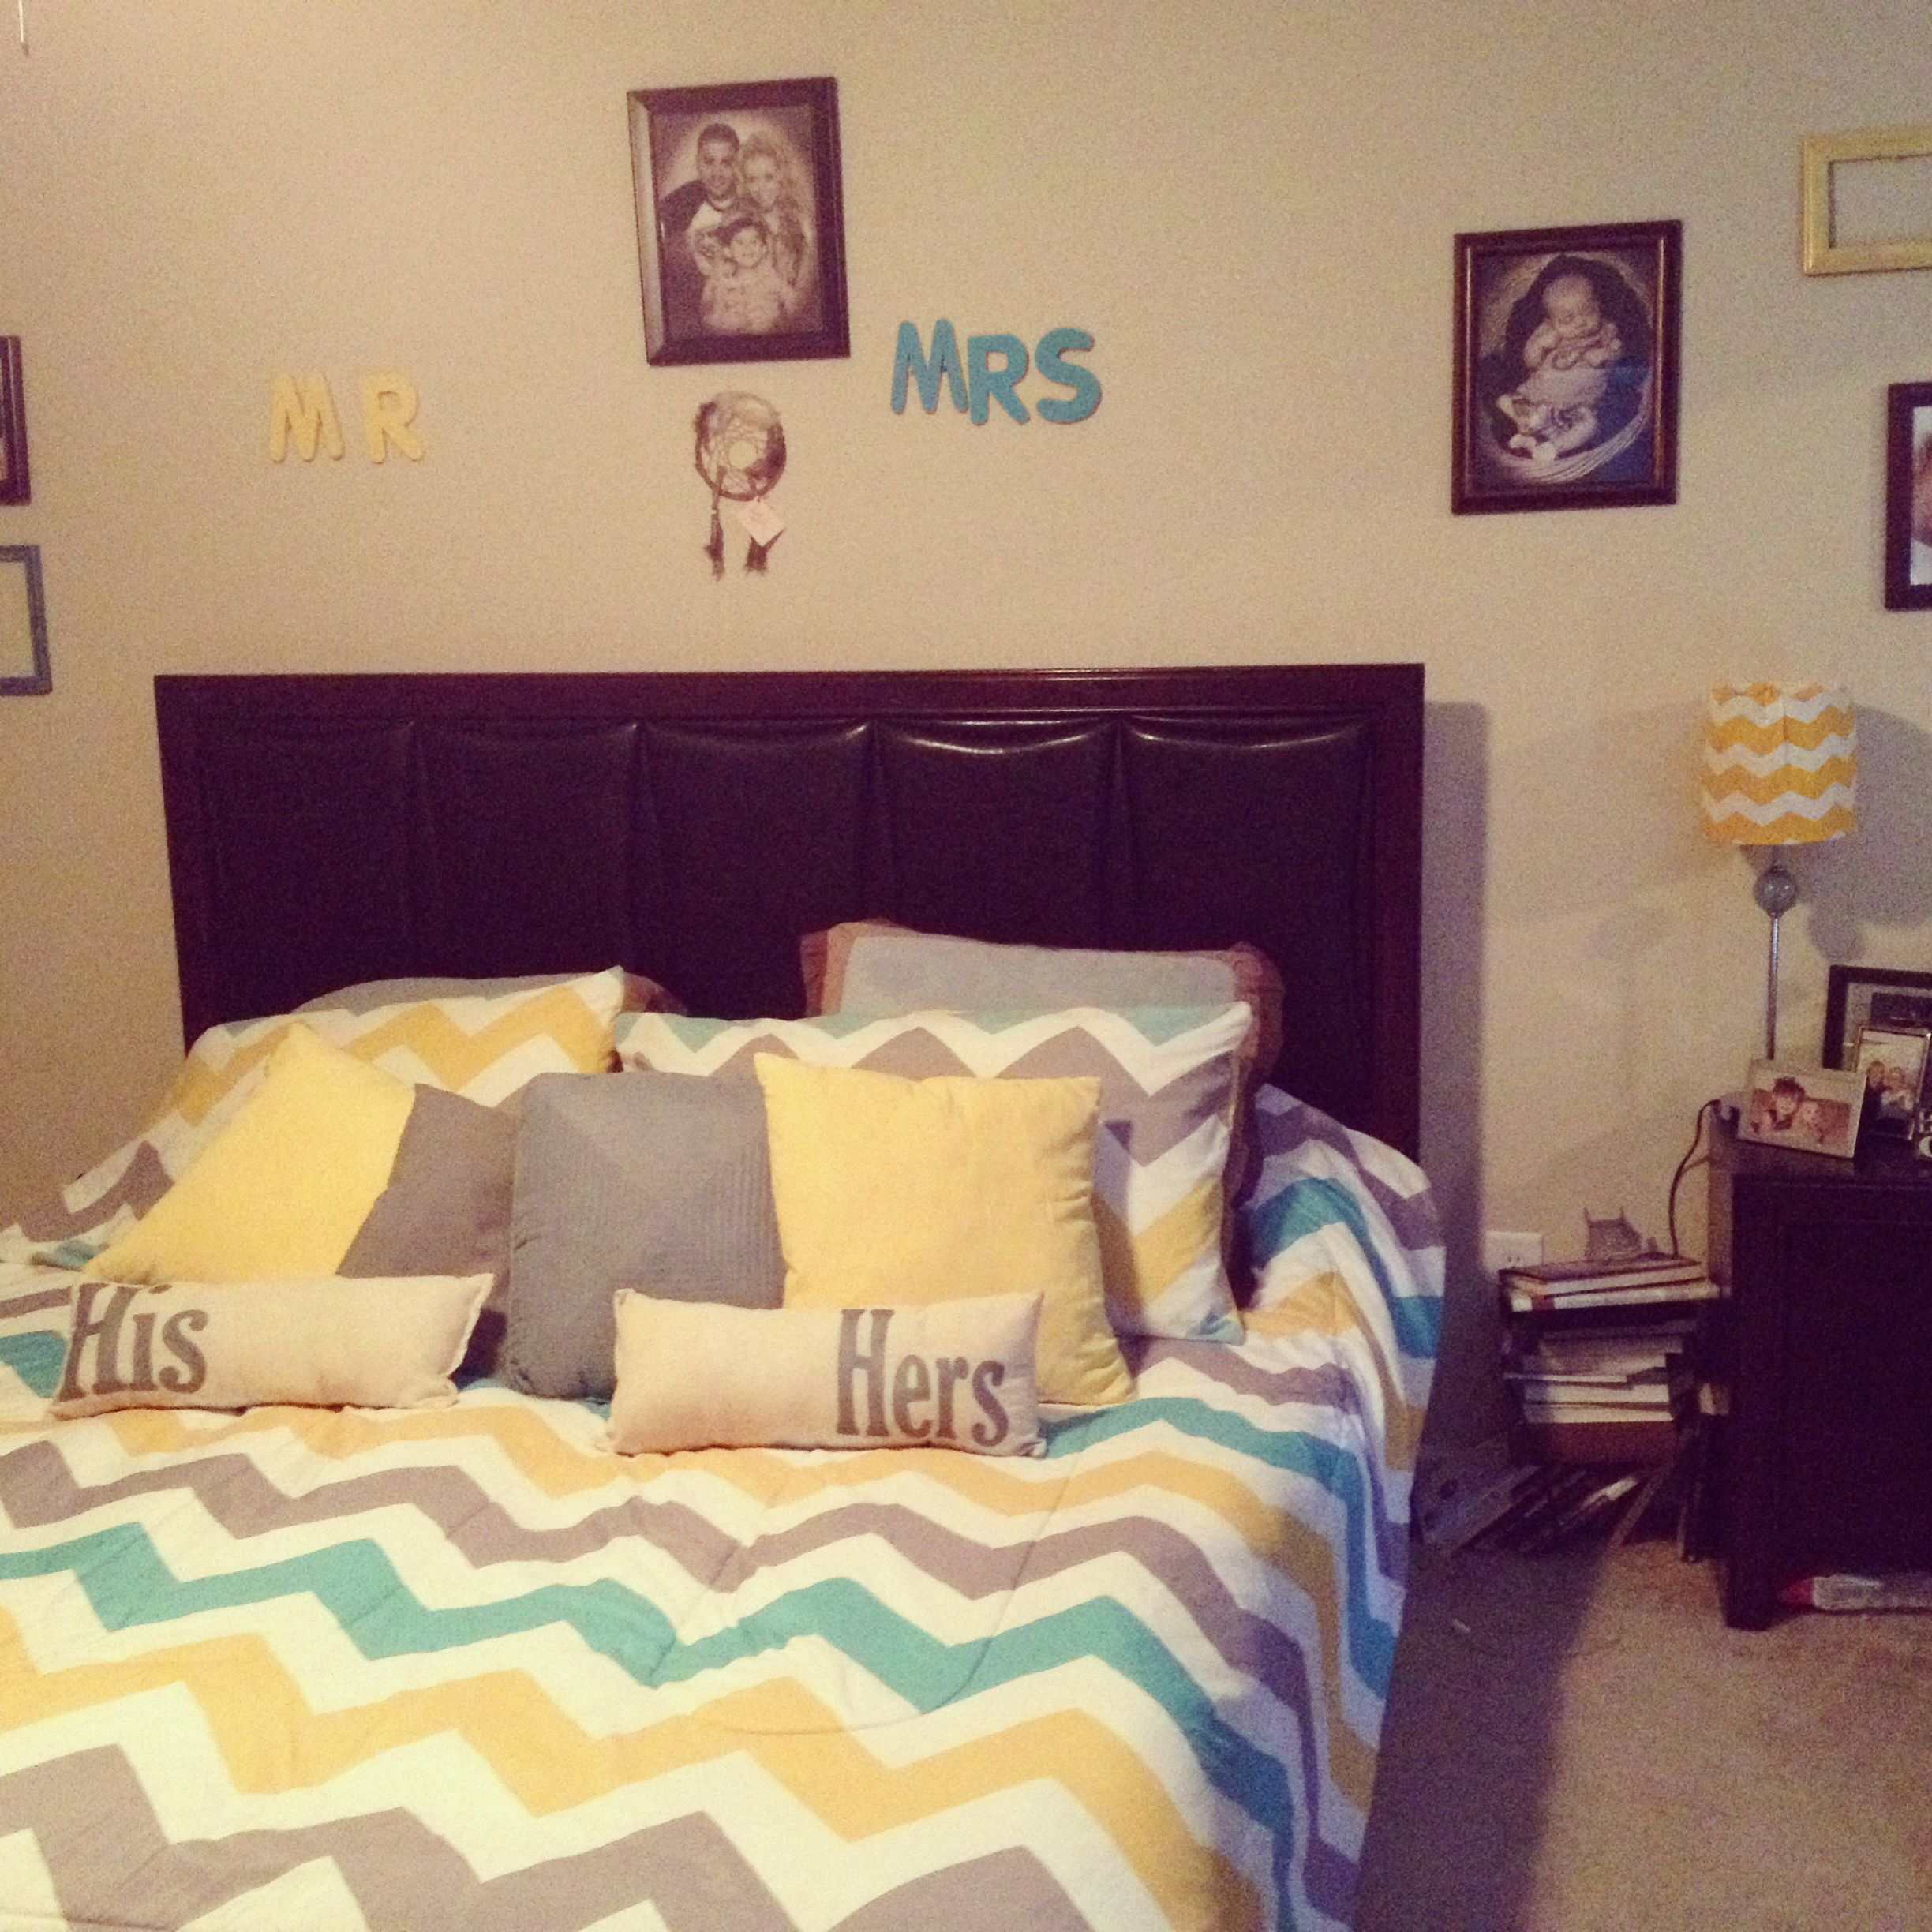 Ordinaire Yellow, Gray, Teal Chevron Bedroom. Flores House.